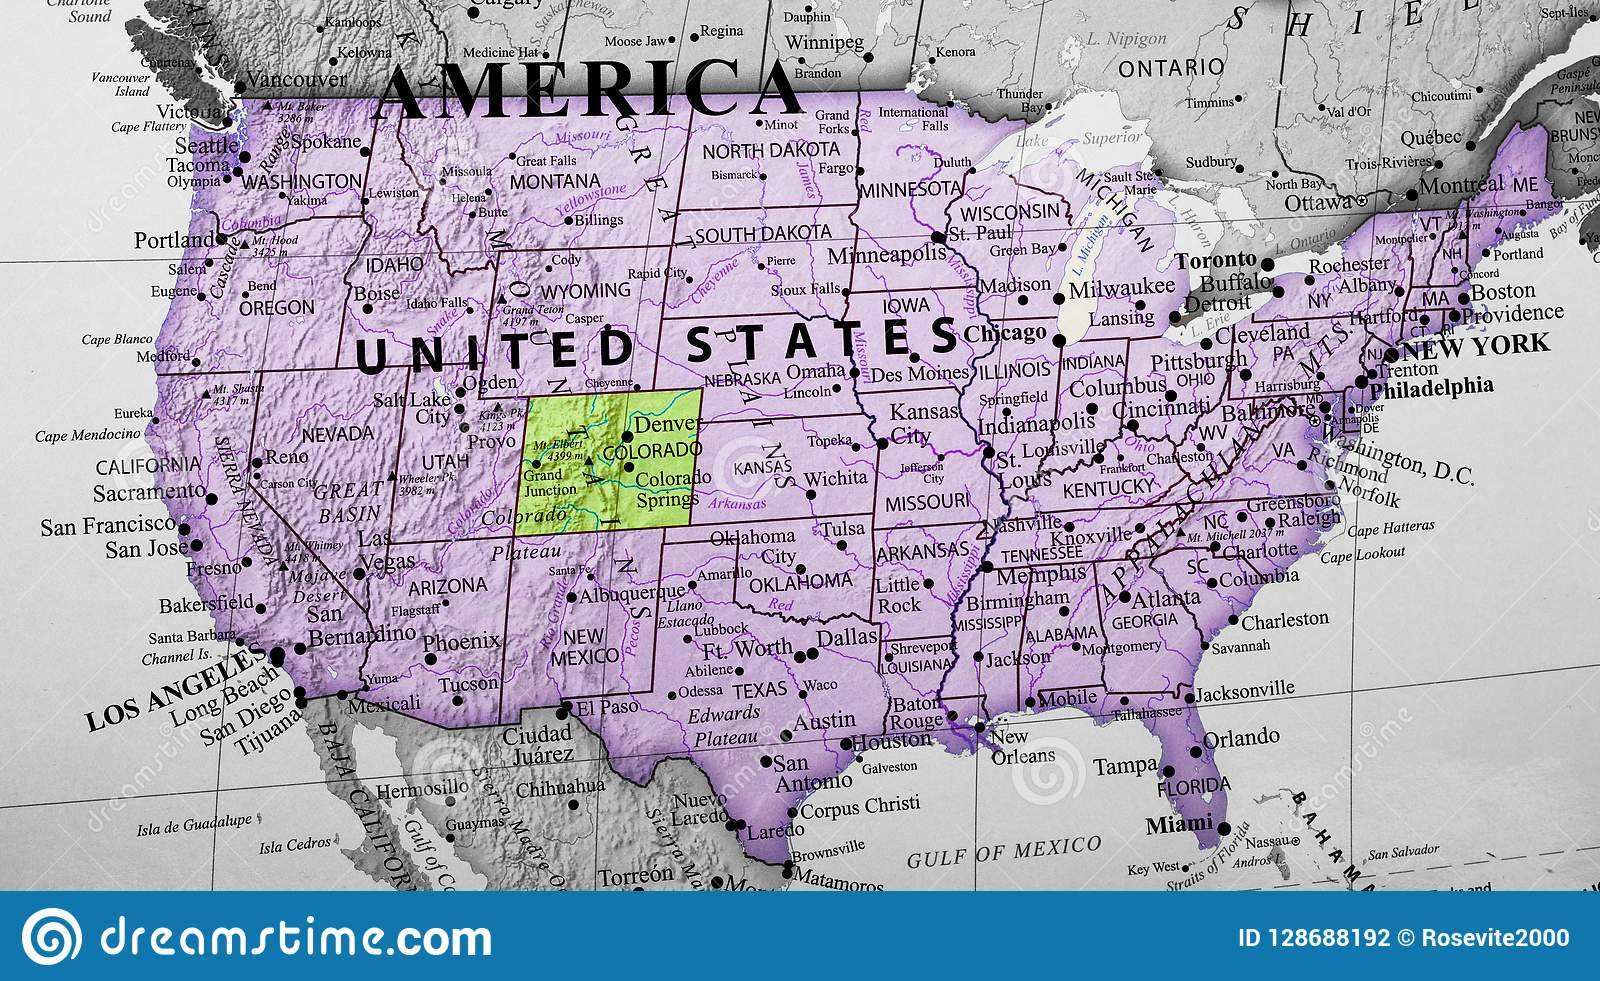 United State Of America Map.Map Of United States Of America Highlighting Colorado State Stock